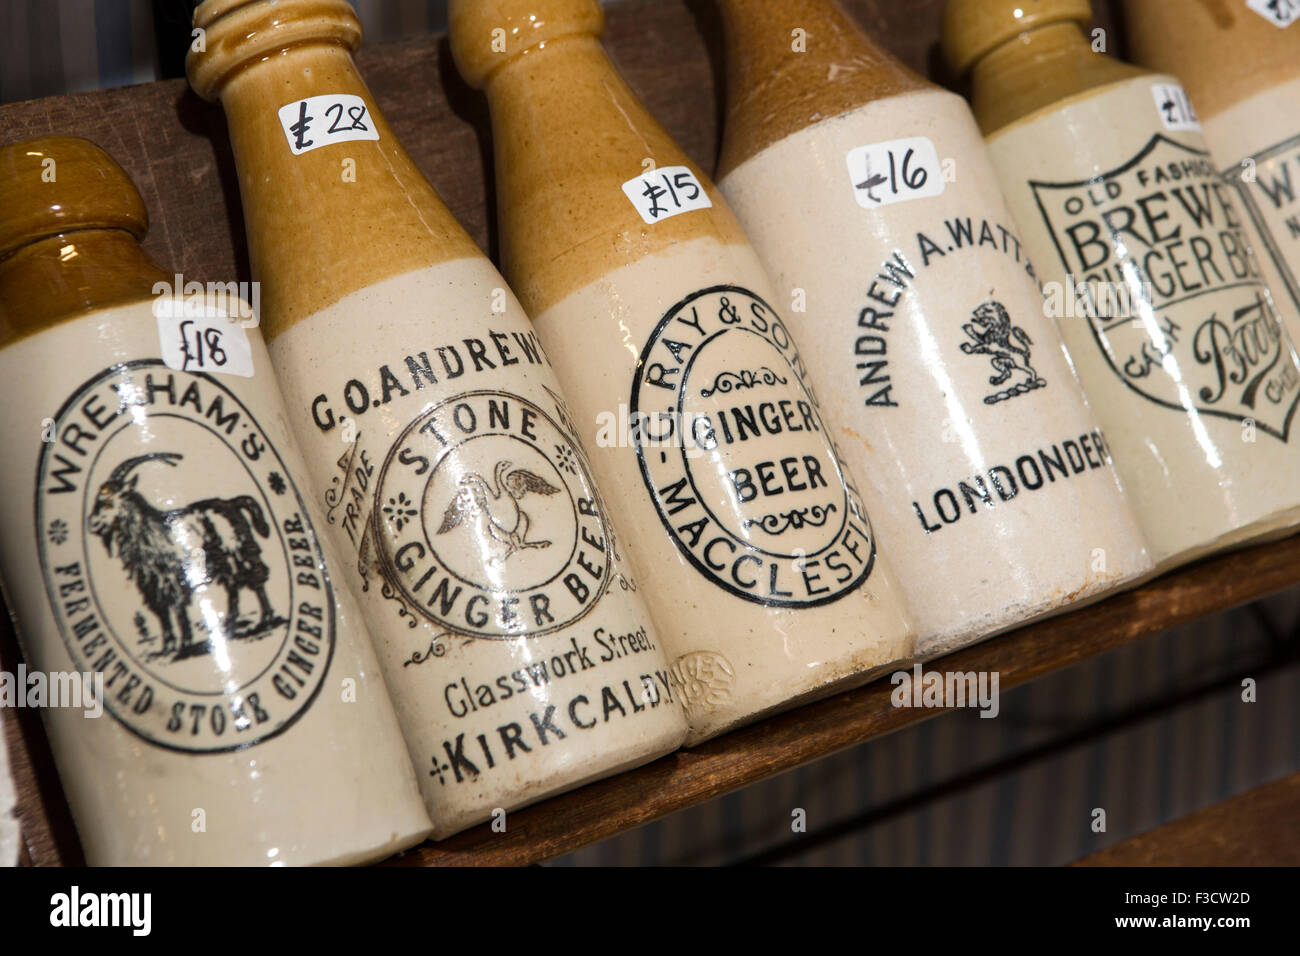 UK, England, Lincolnshire, Lincoln, Antiques Fair Indoor Hall, old stoneware ginger beer bottles - Stock Image